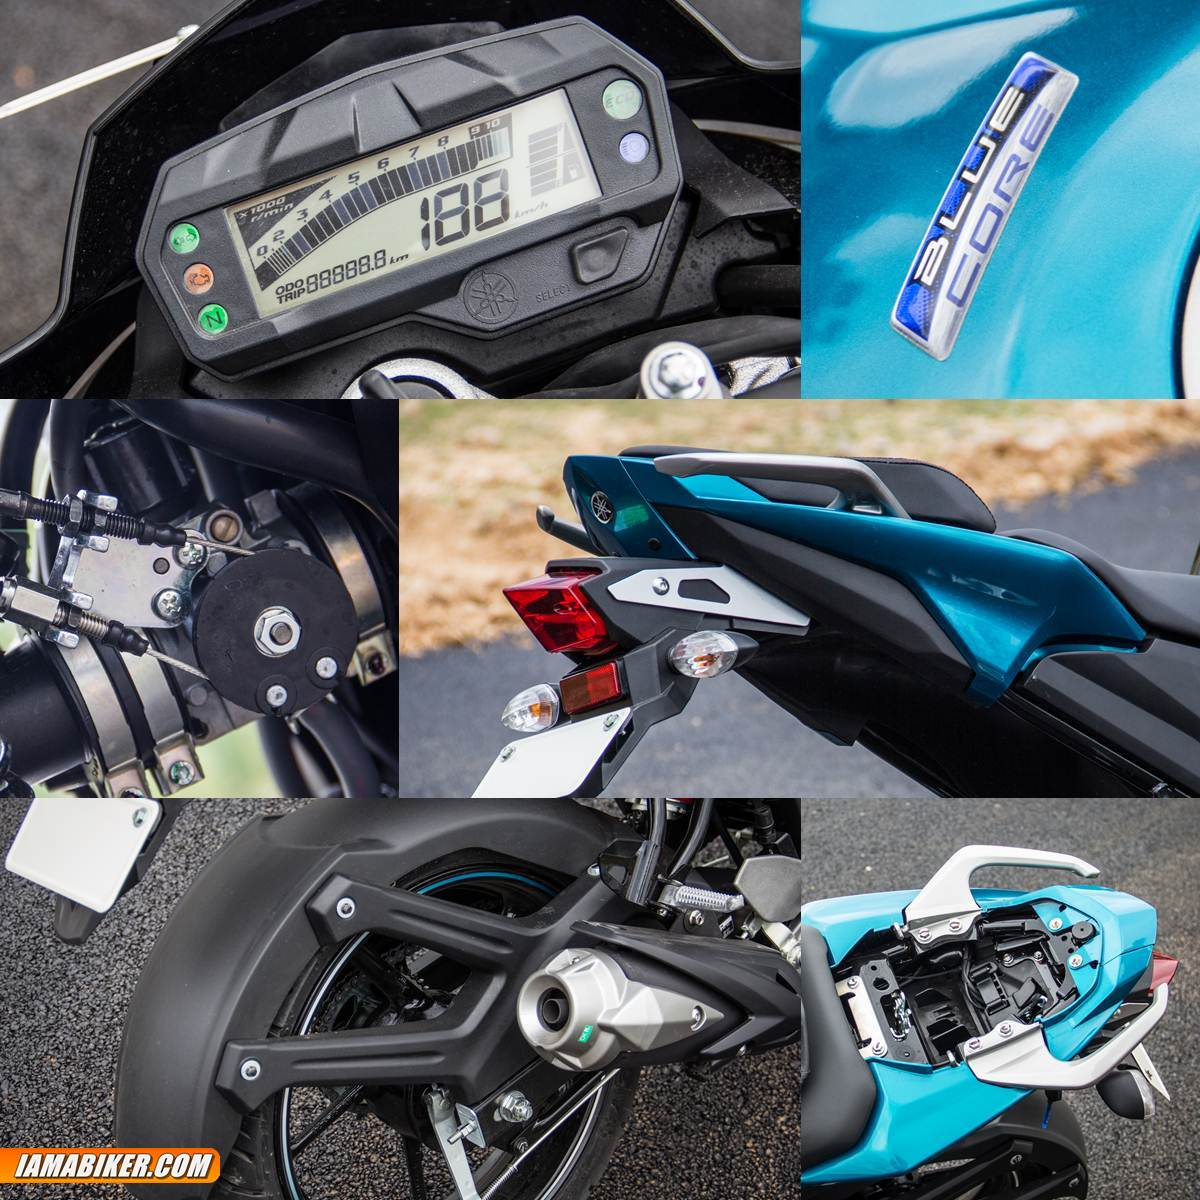 yamaha fz-s v2 review - accessories